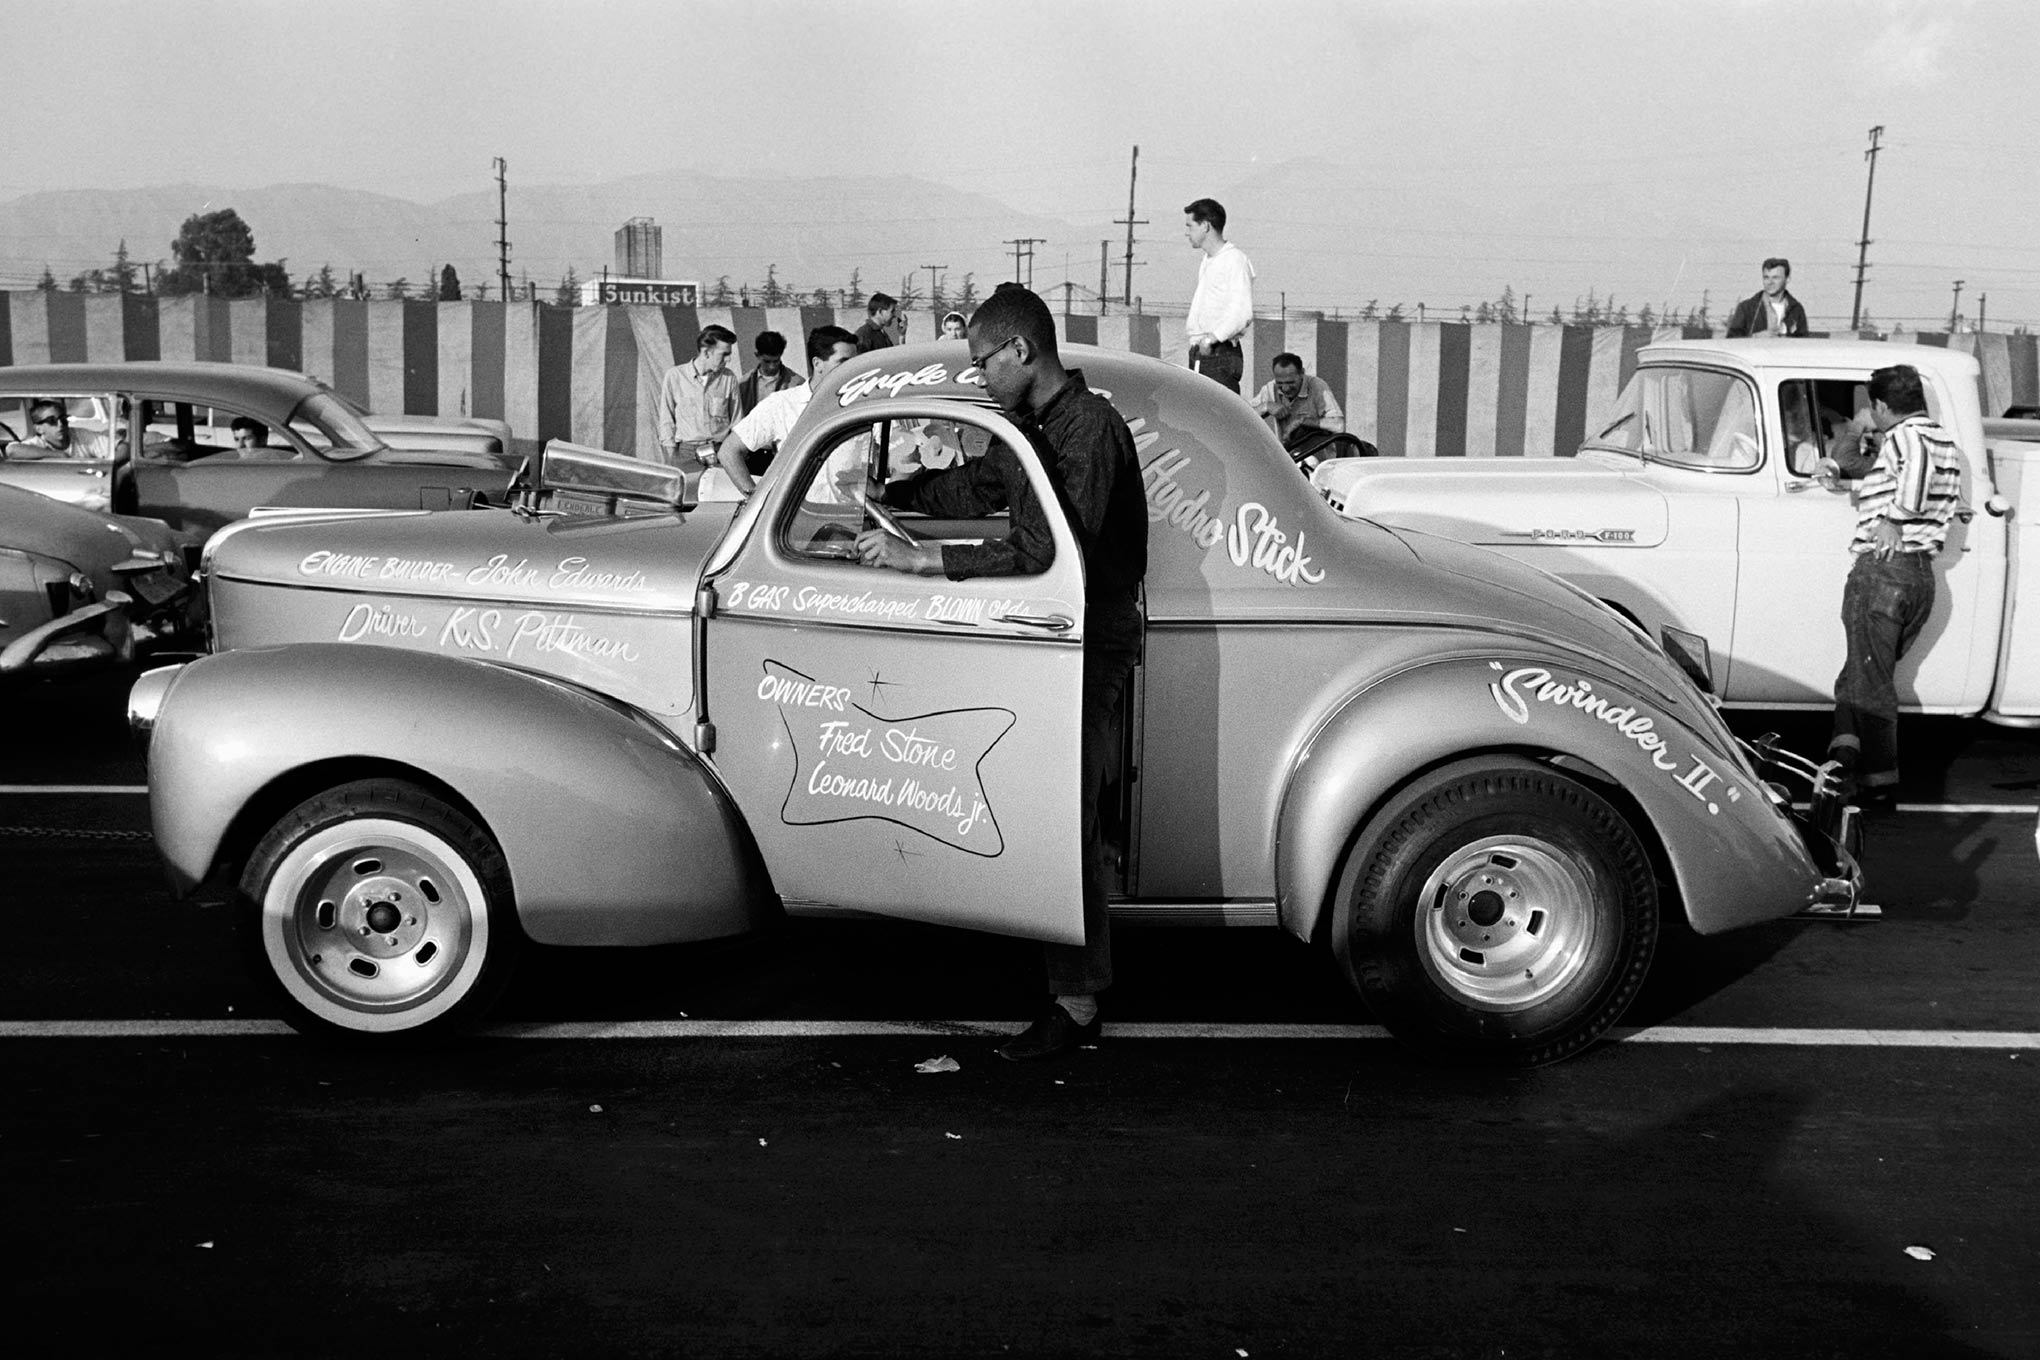 This is the Fred Stone and Leonard Woods B/Gas Willys driven by KS Pittman. This was pre-Stone Woods and Cook, but the Swindler II Gasser was a terror even back in 1961. It won B/Gas with a 126.93 mph at 11.22 seconds, which was a faster time than A/Gas!